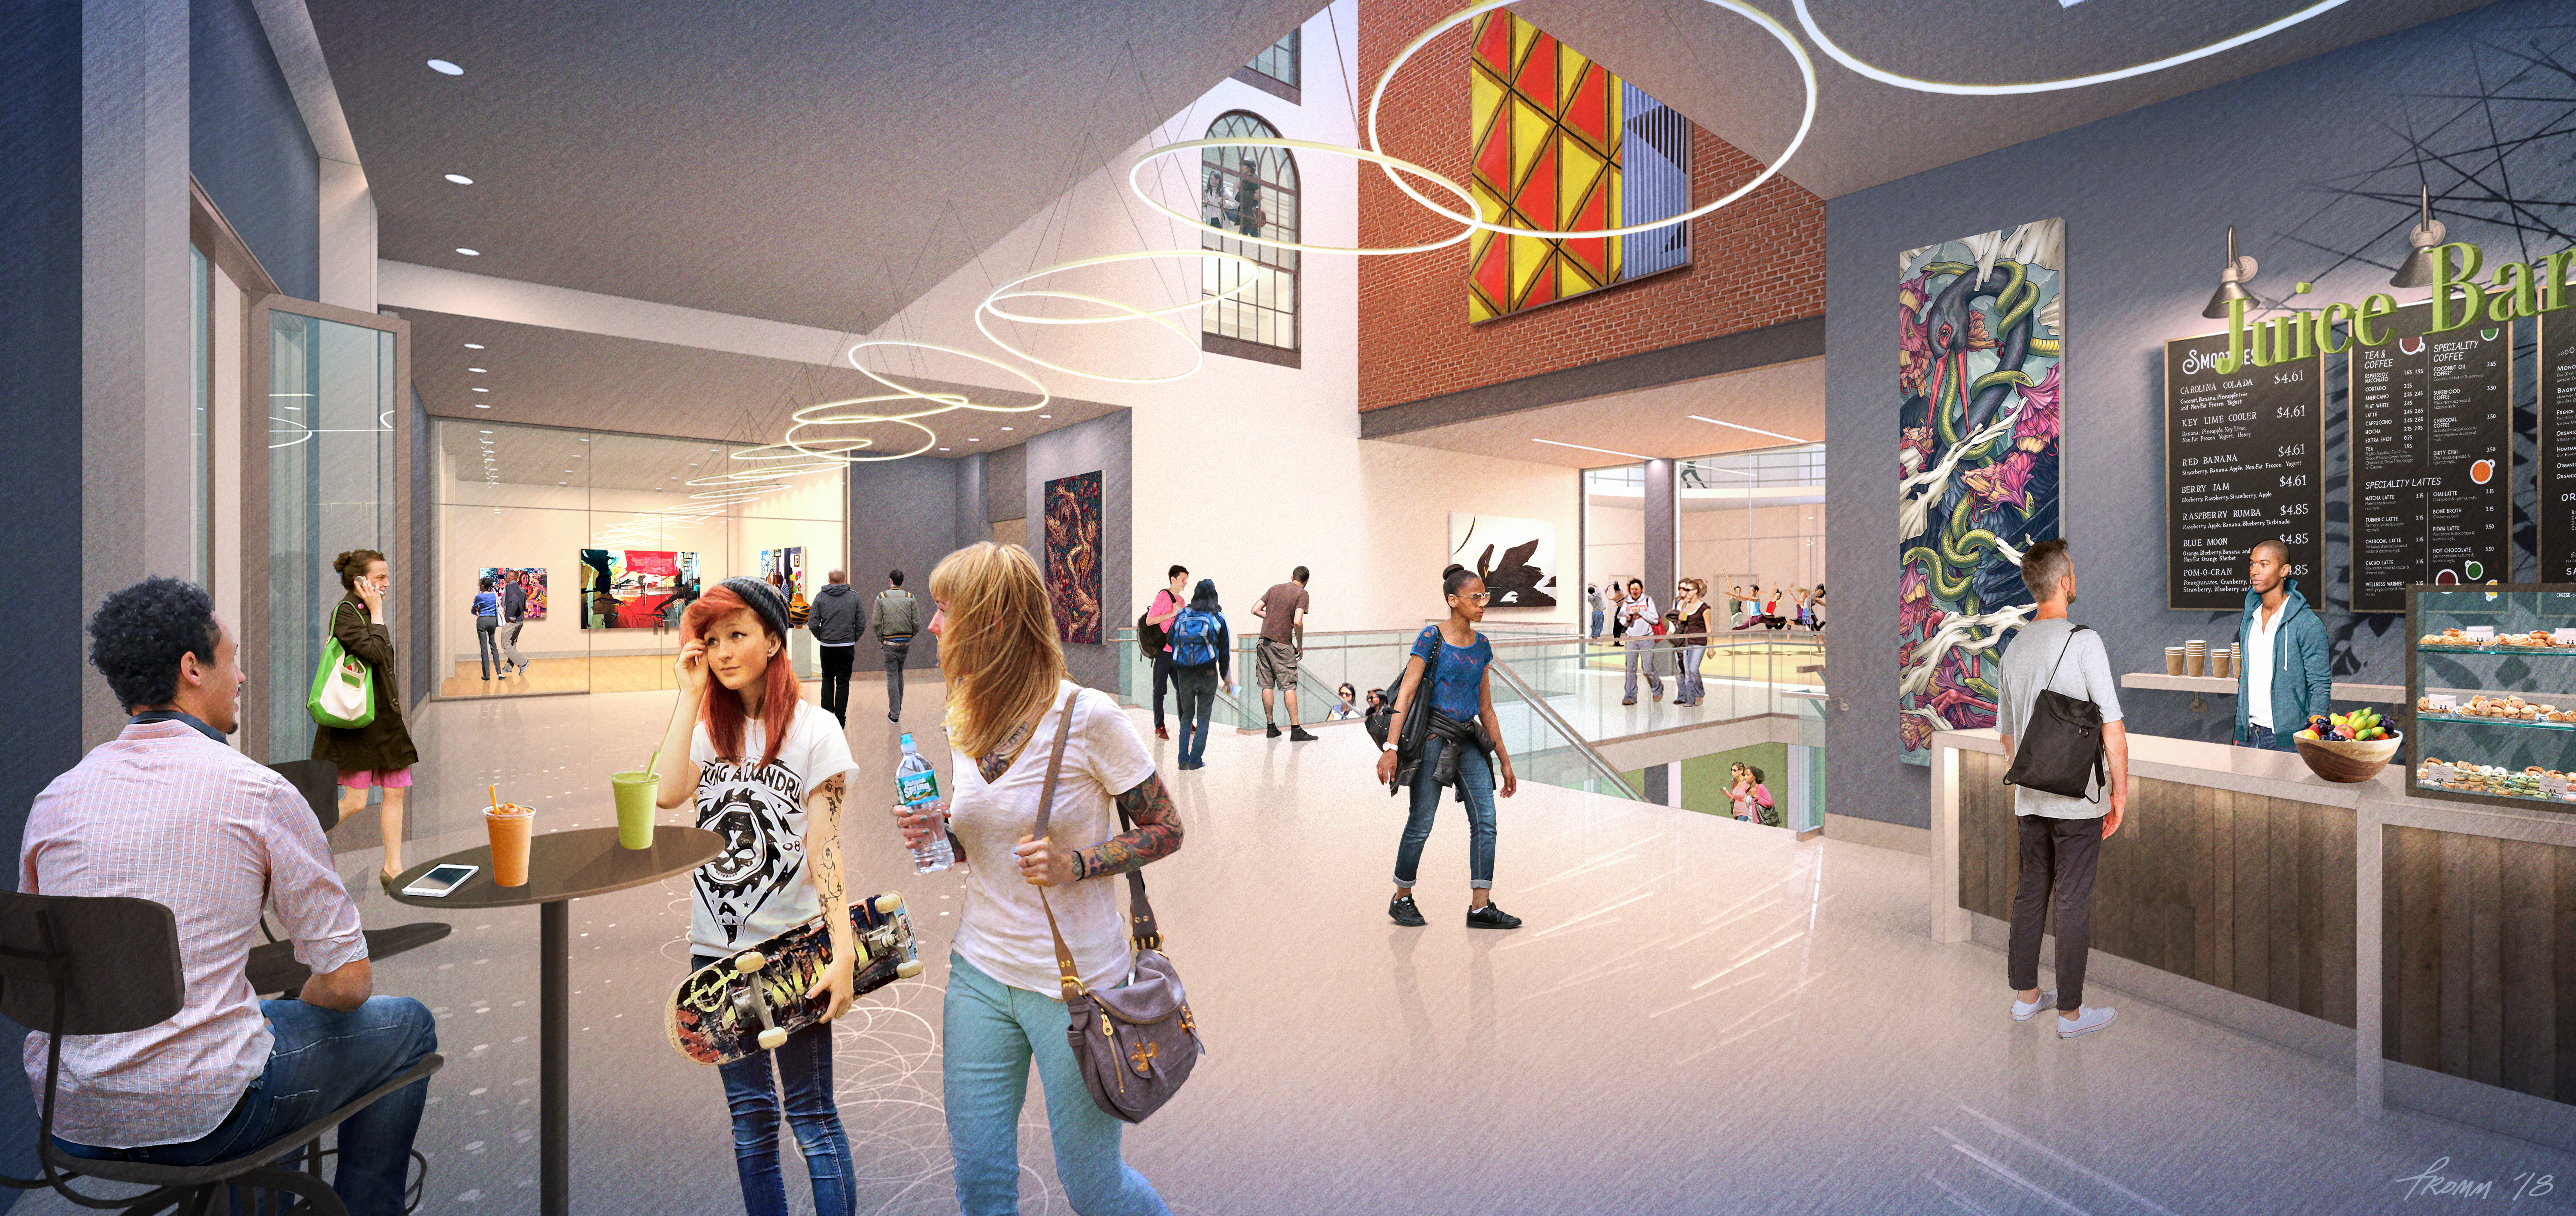 Architectural rendering of renovations to the University of the Arts´ Gershman Y lobby.